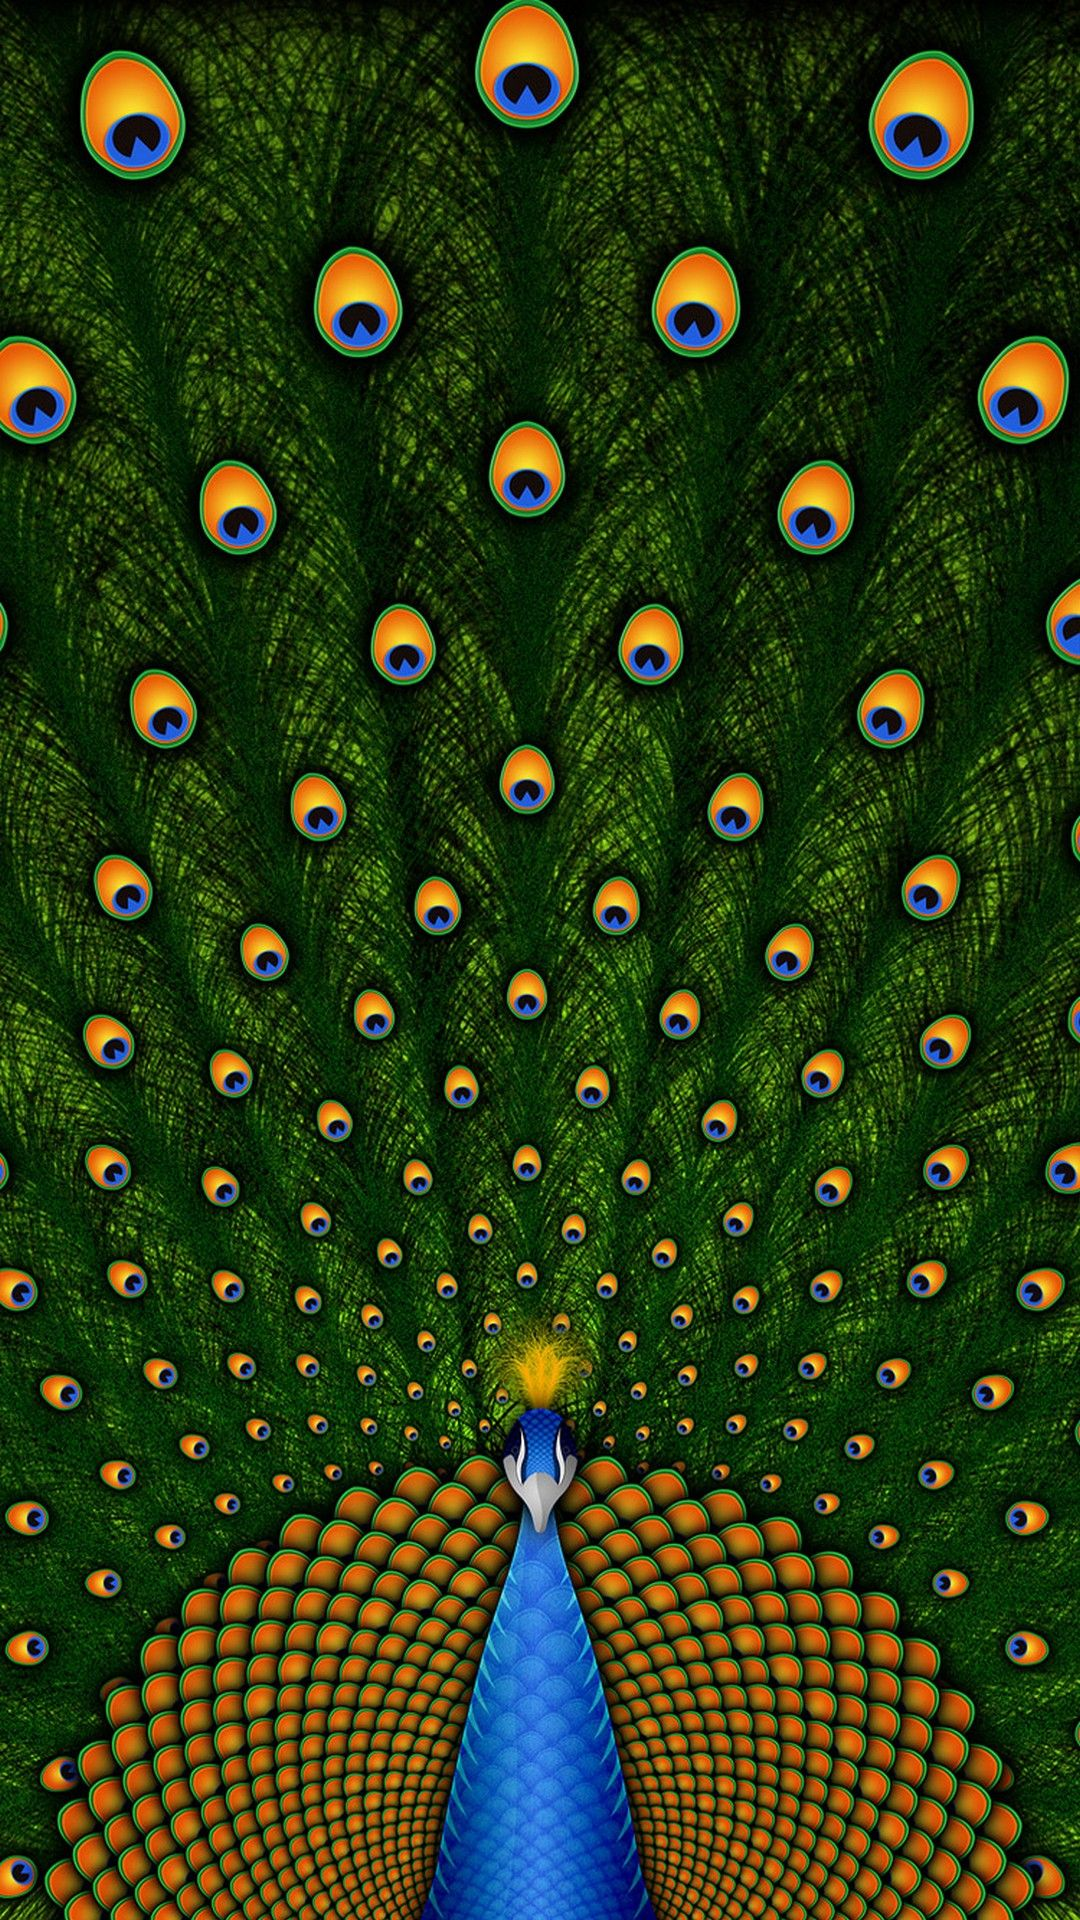 Peacock Cute Girly Wallpaper For iPhone Best HD